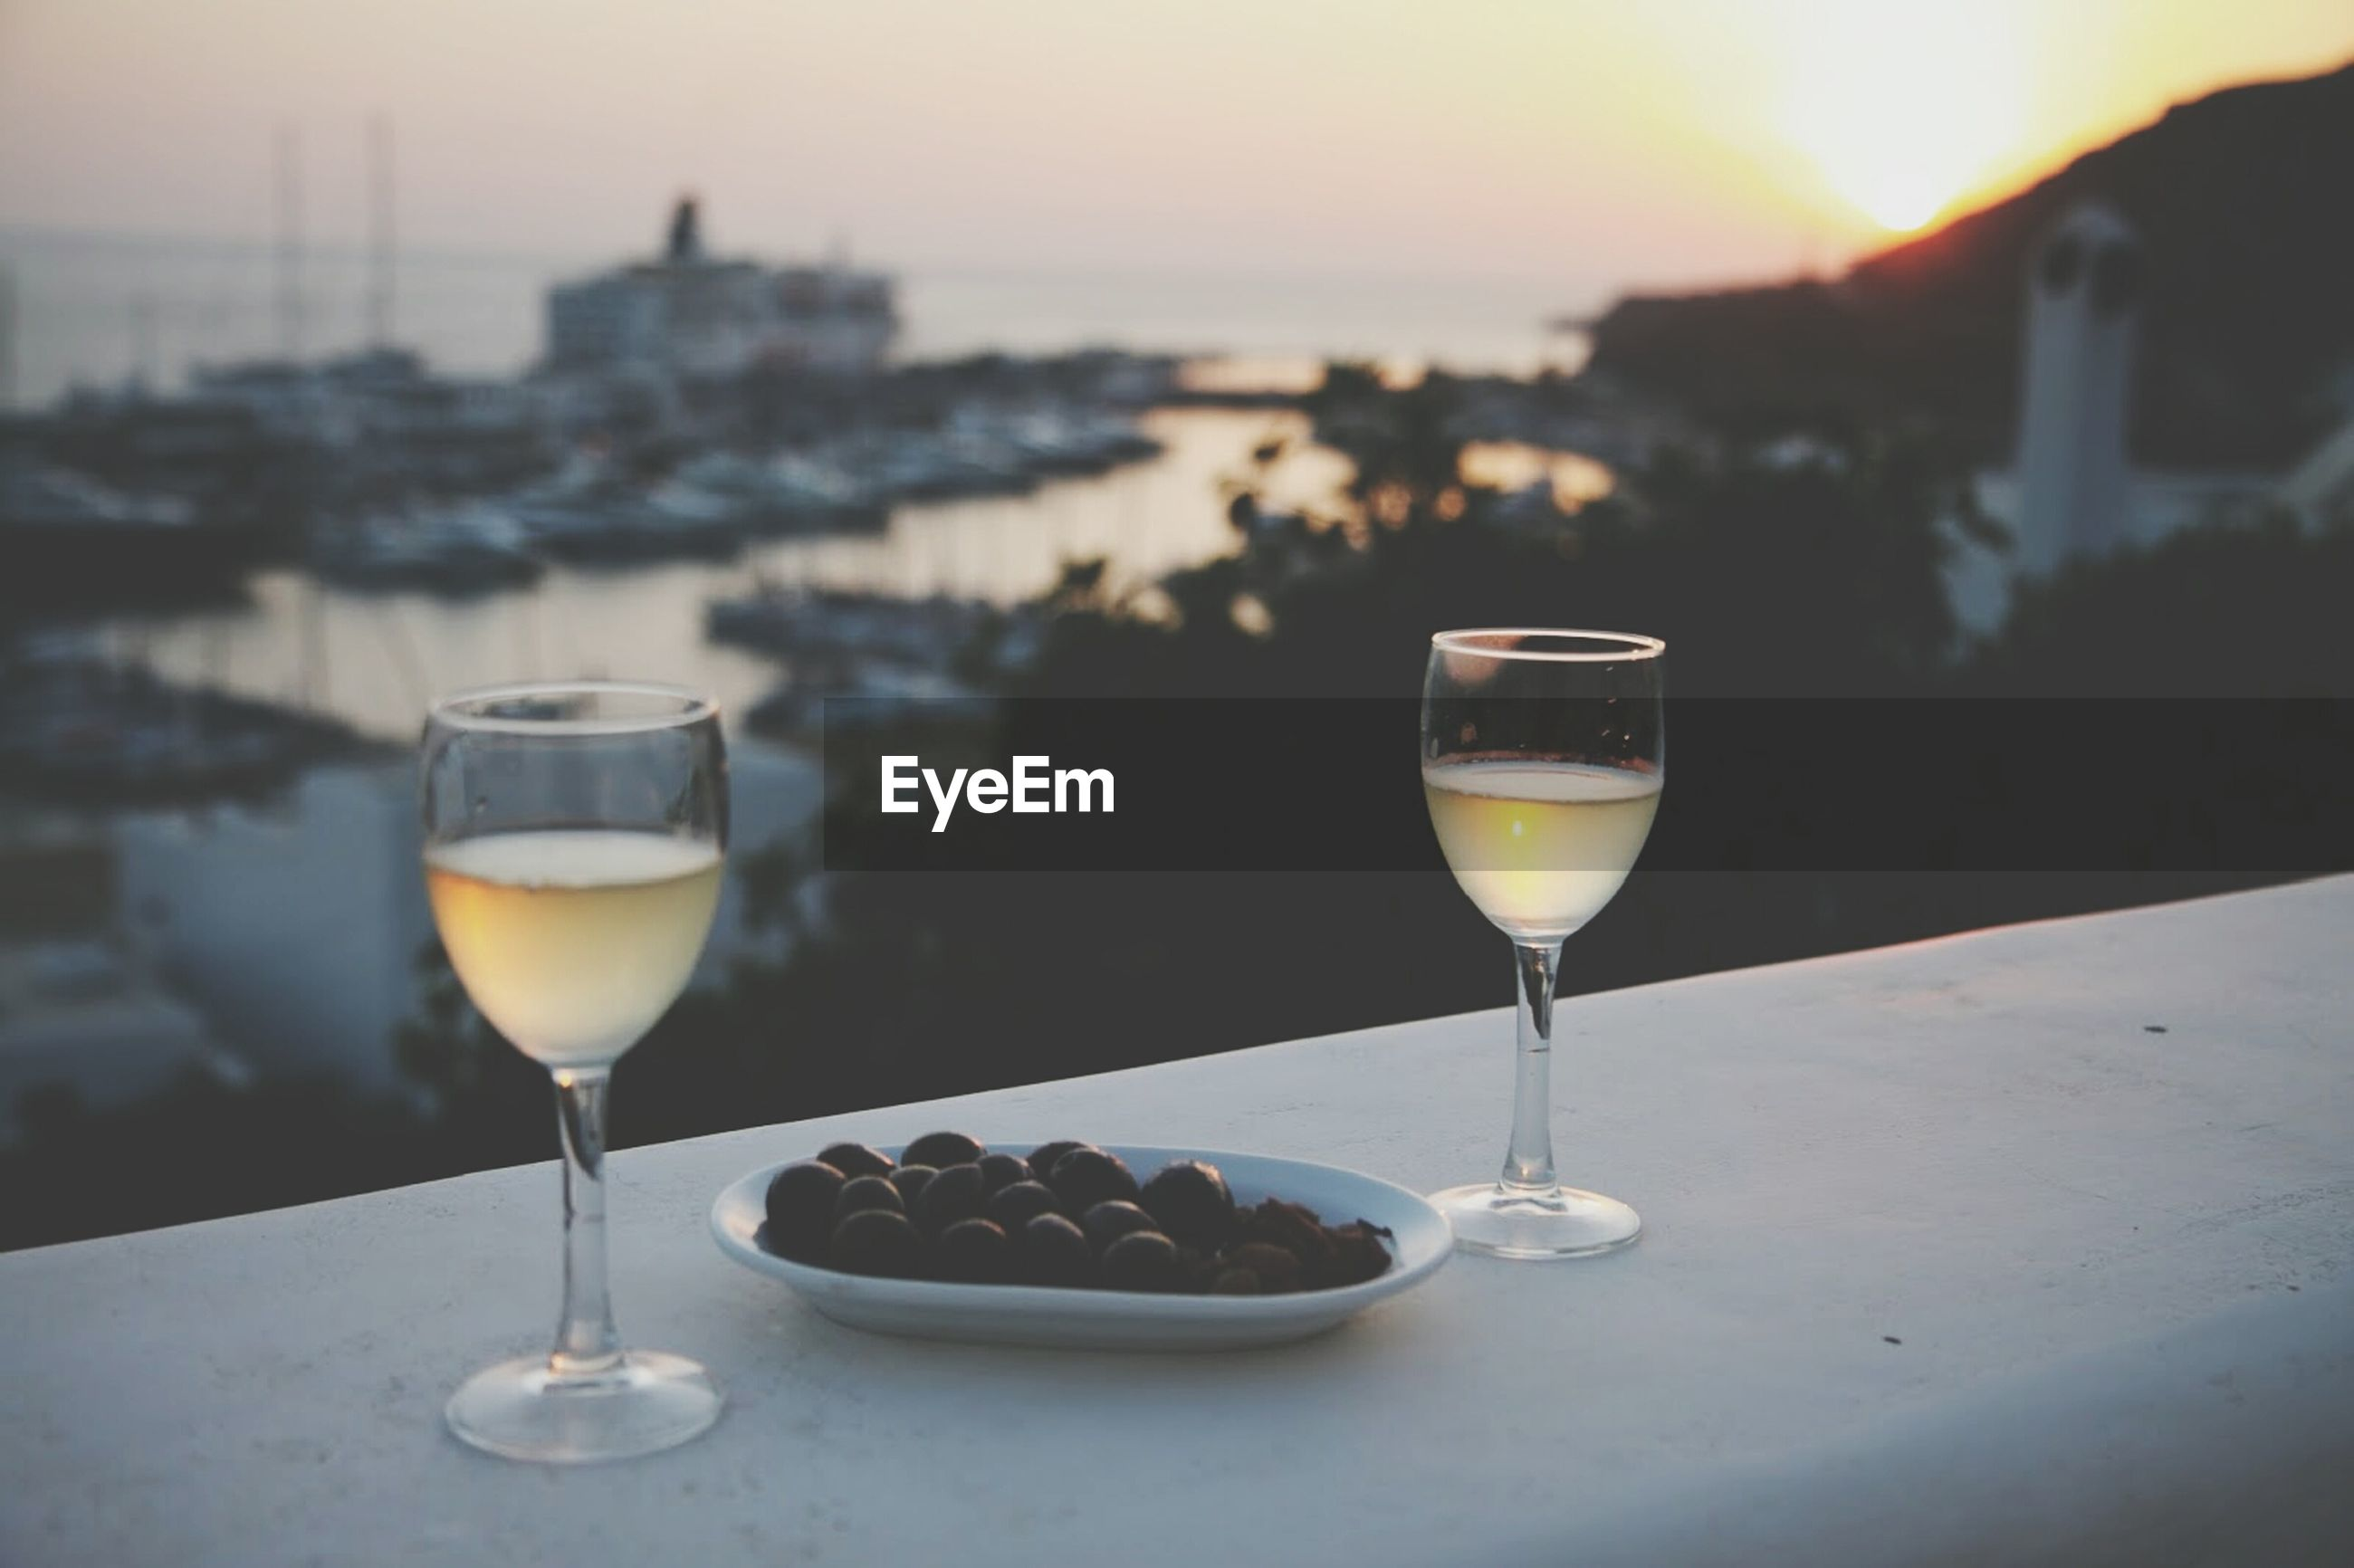 Black olives and wine glasses on balcony